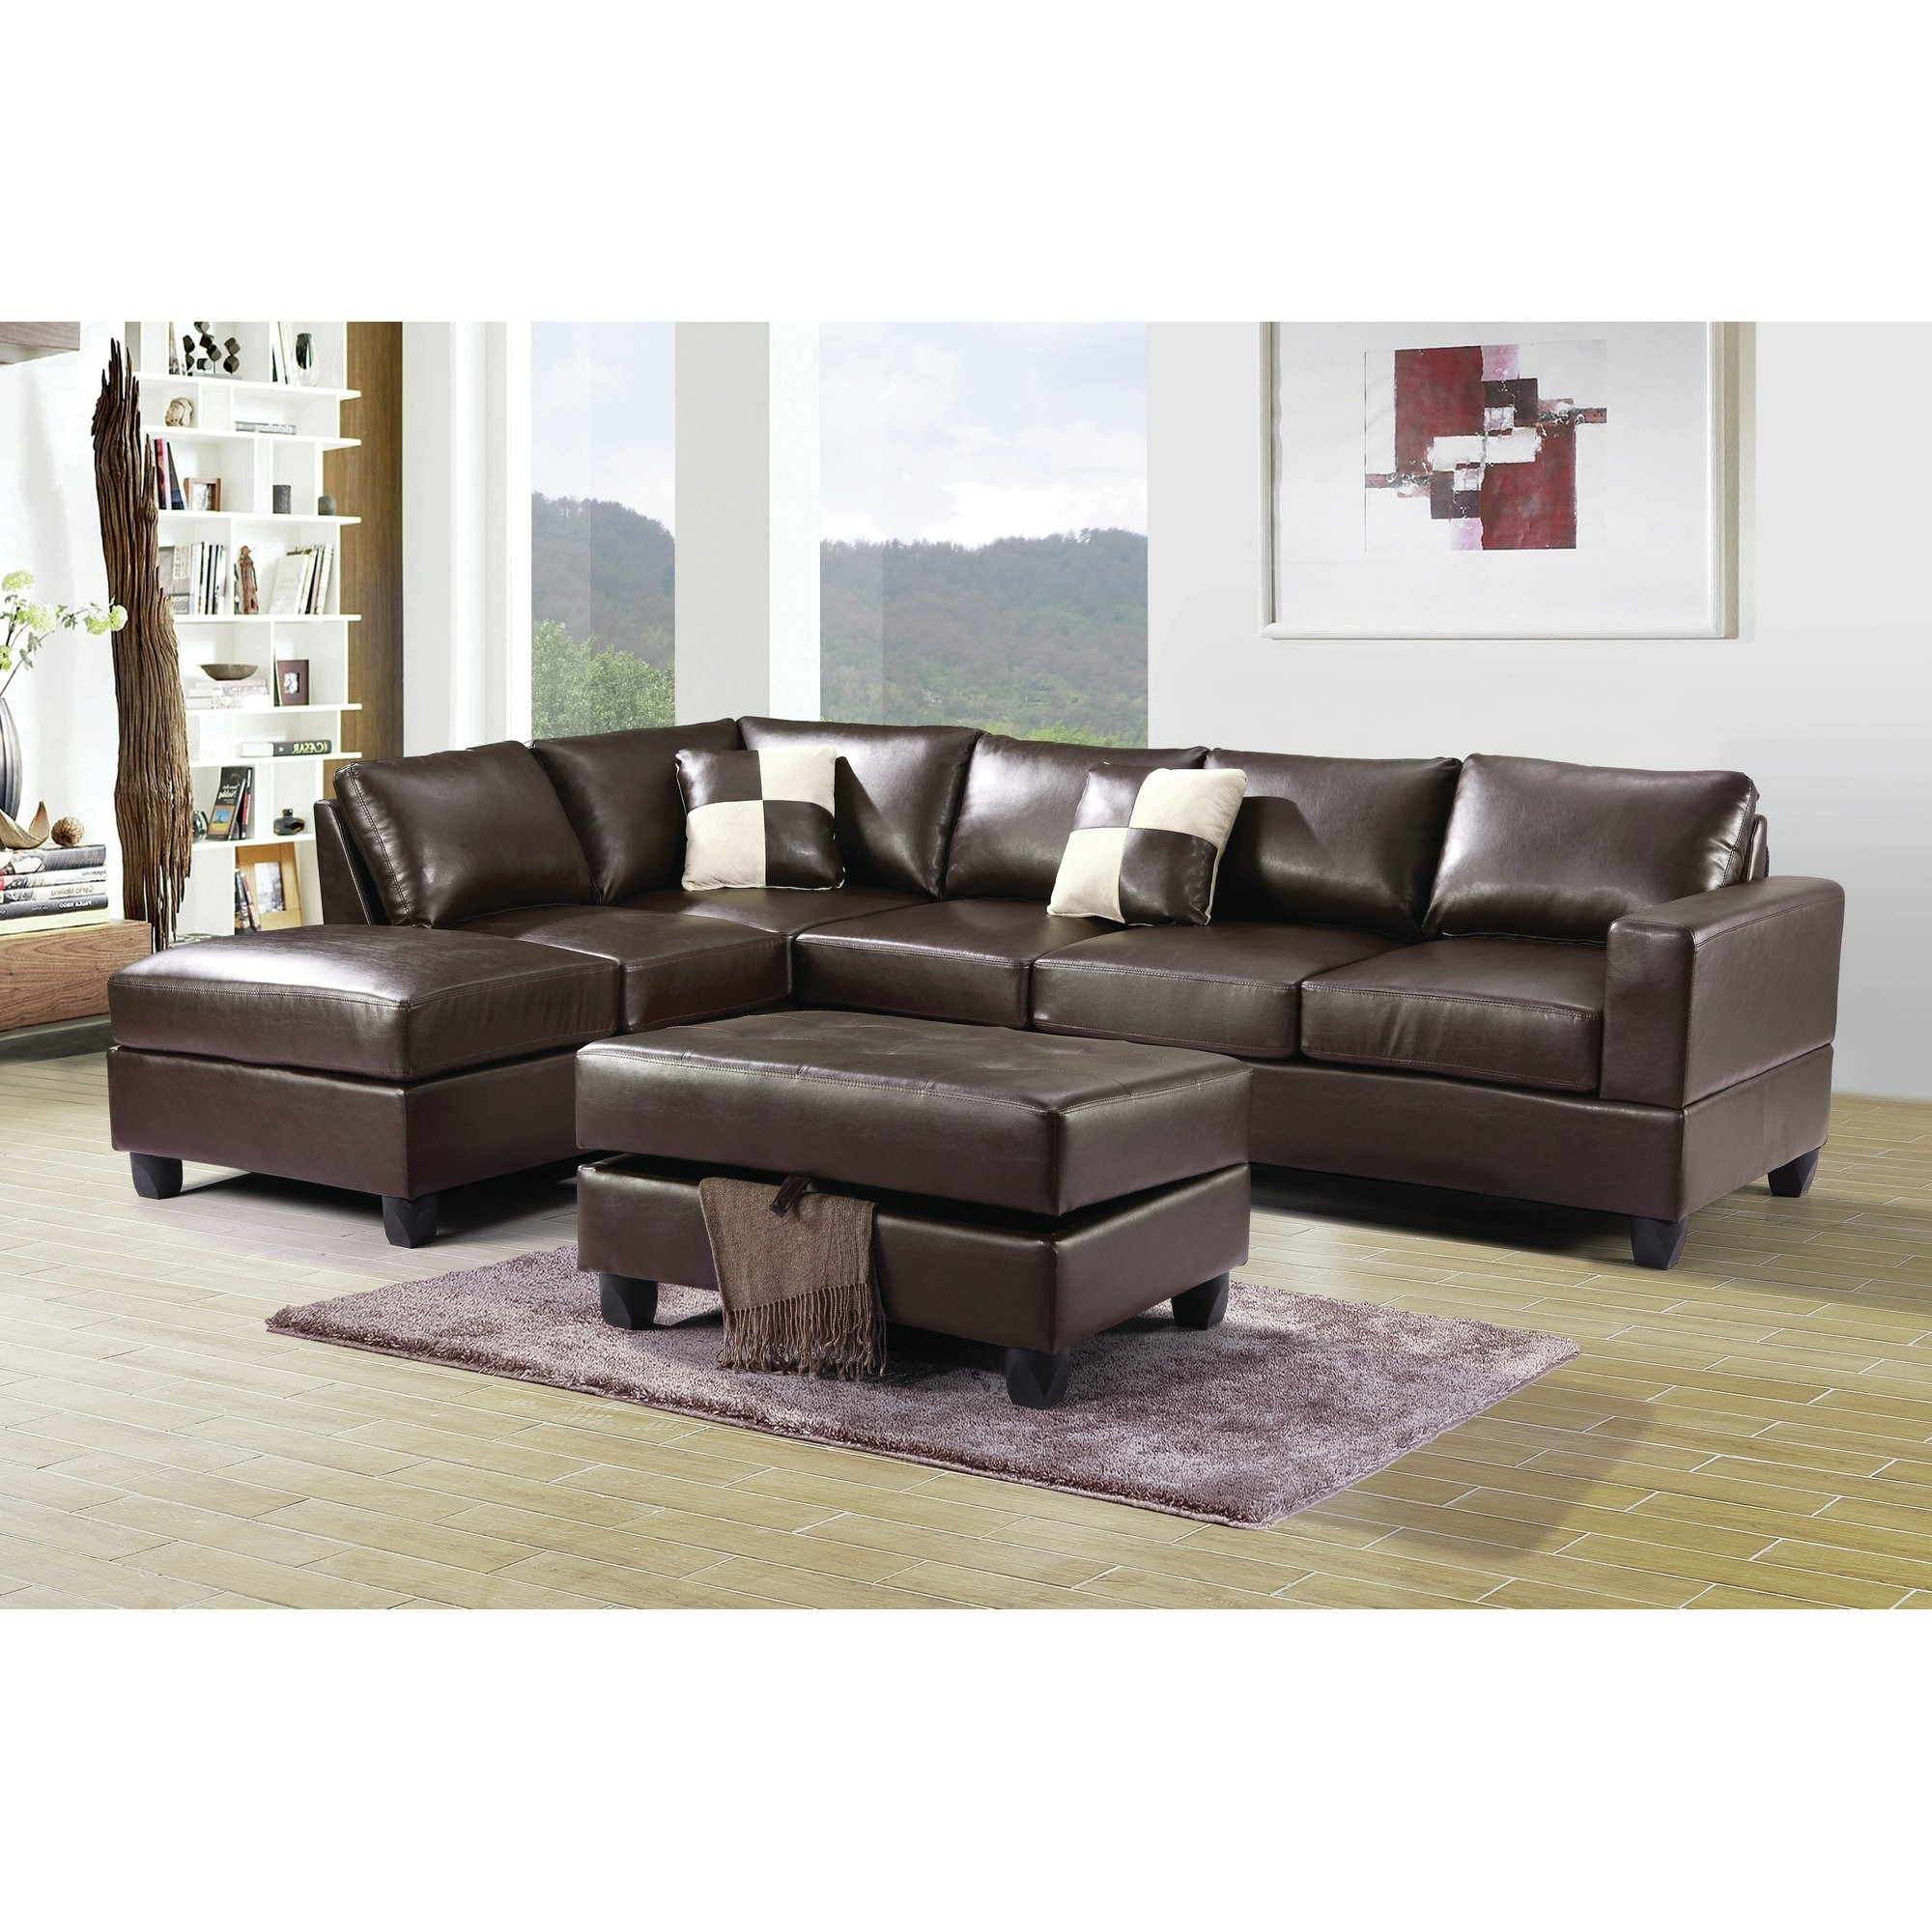 Most Recent Furniture: Sectional Sofas Amazon (View 17 of 20)